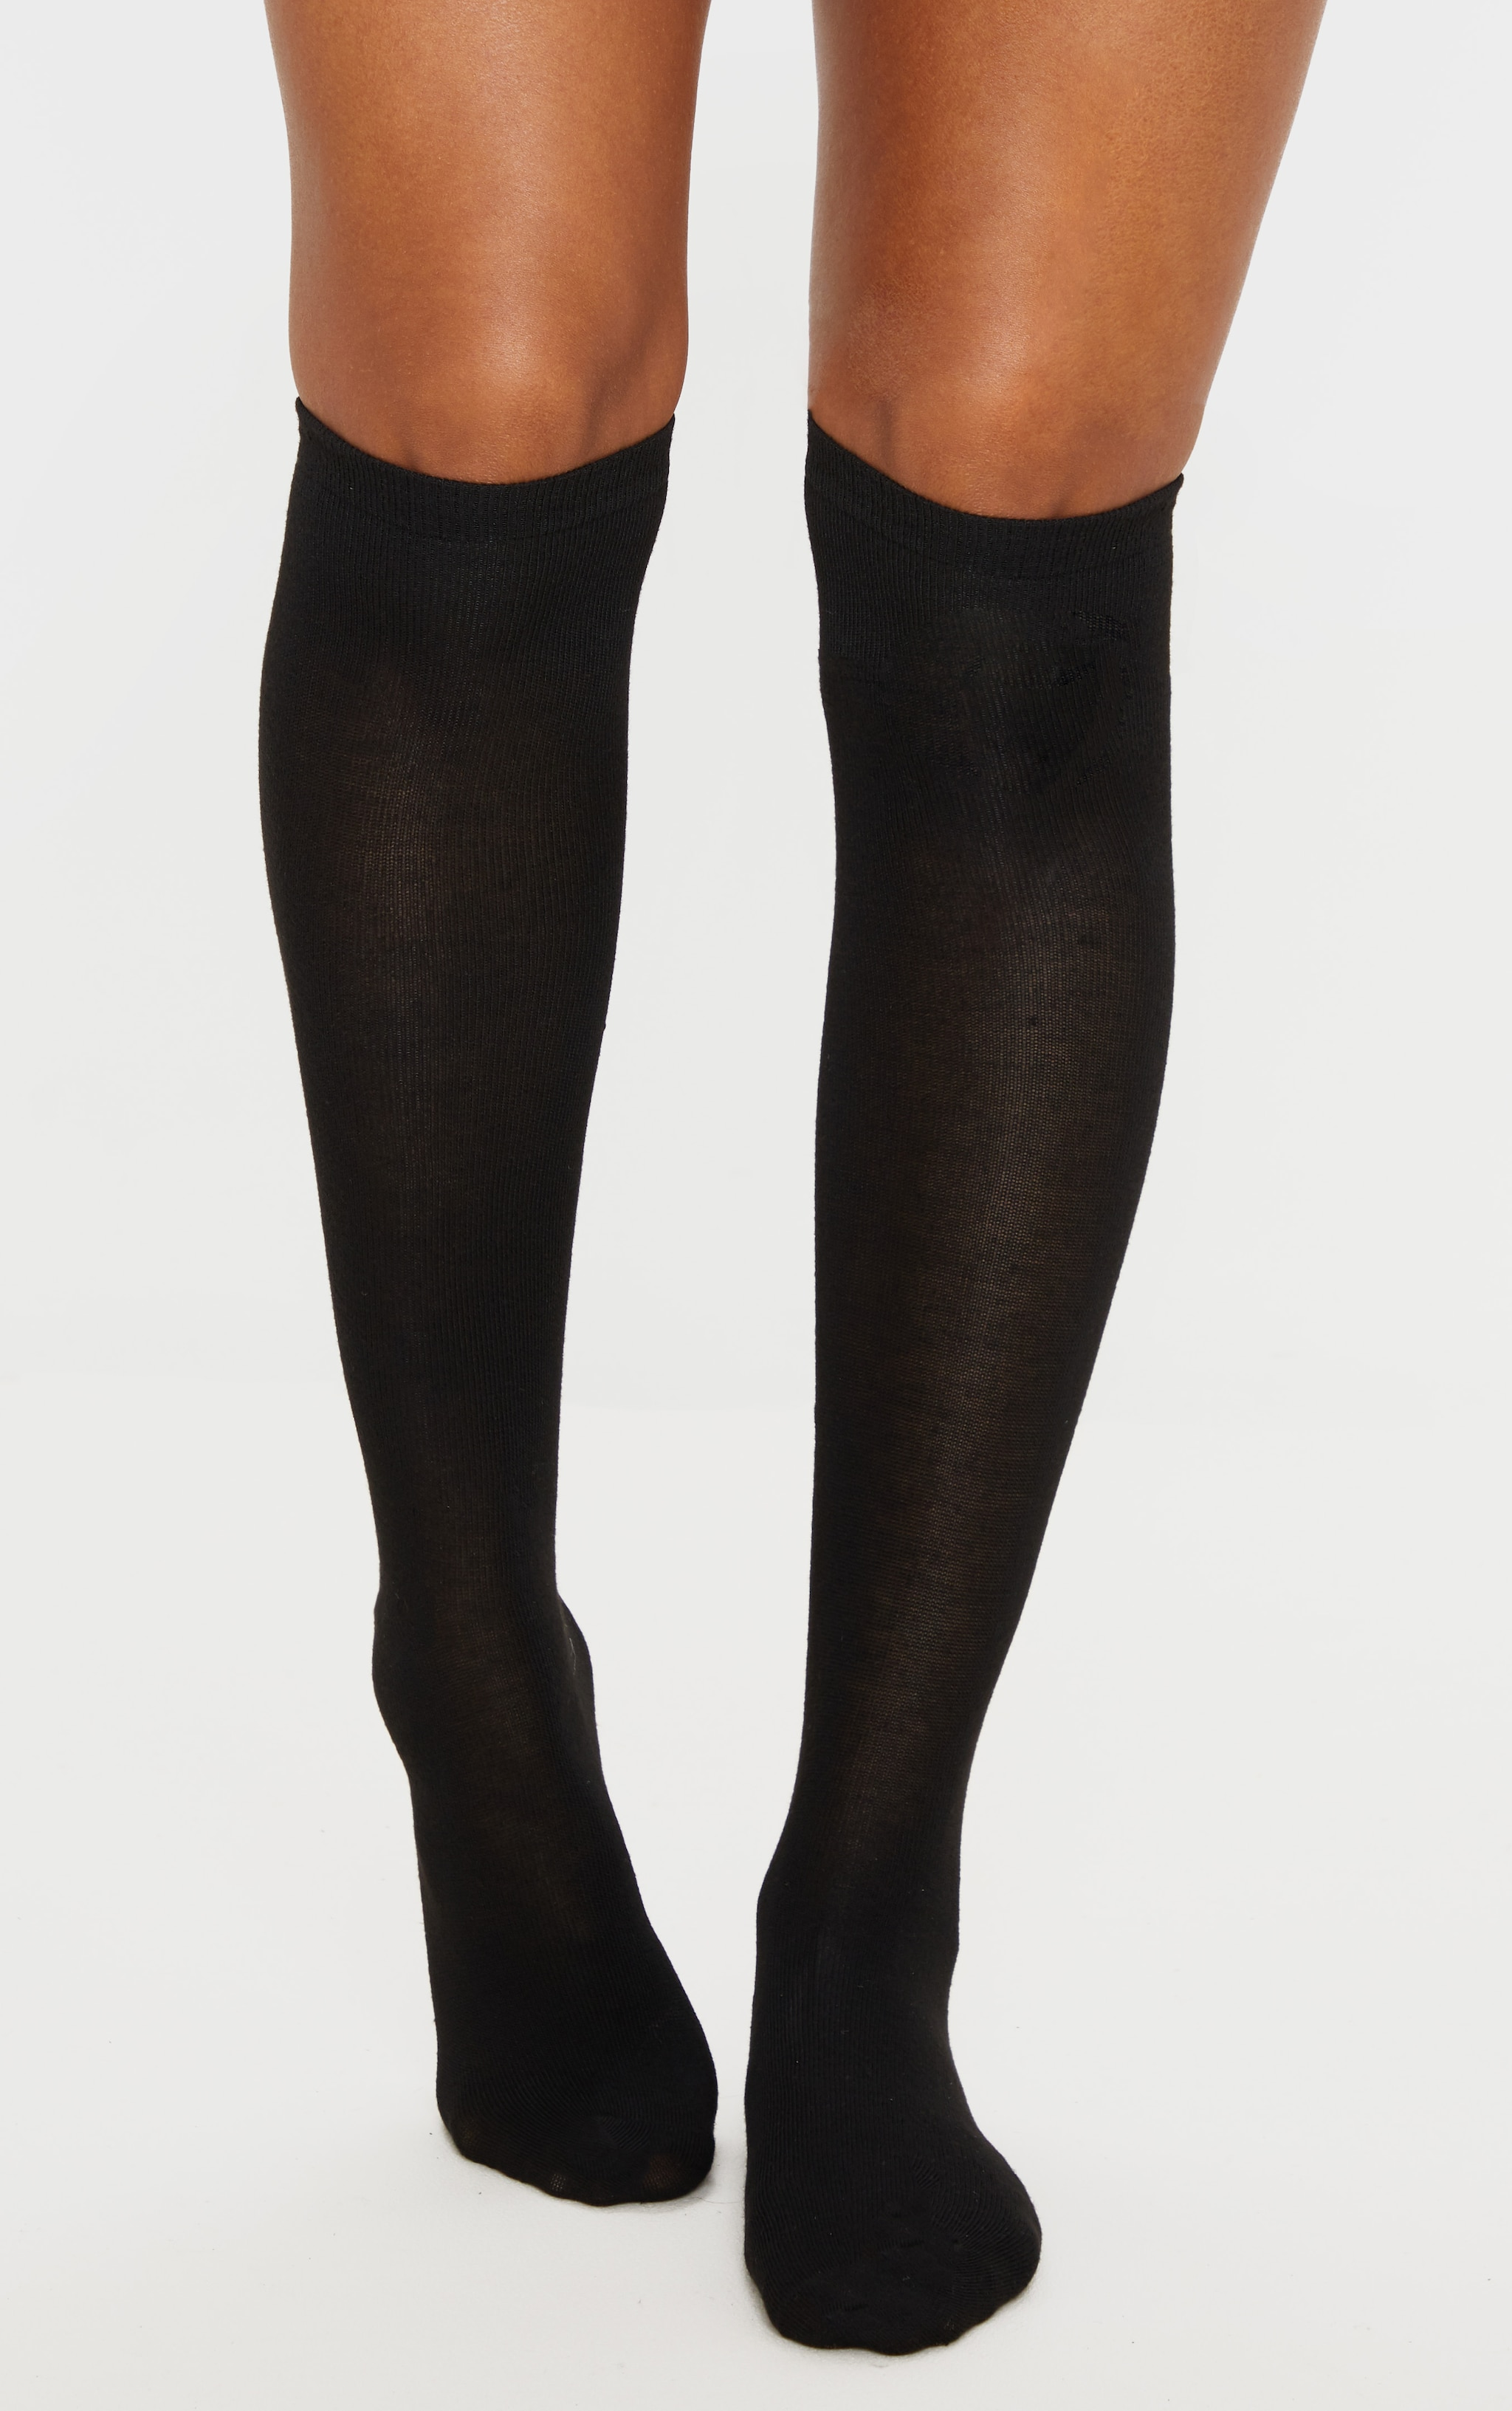 Black Over The Knee Socks Three Pack 1